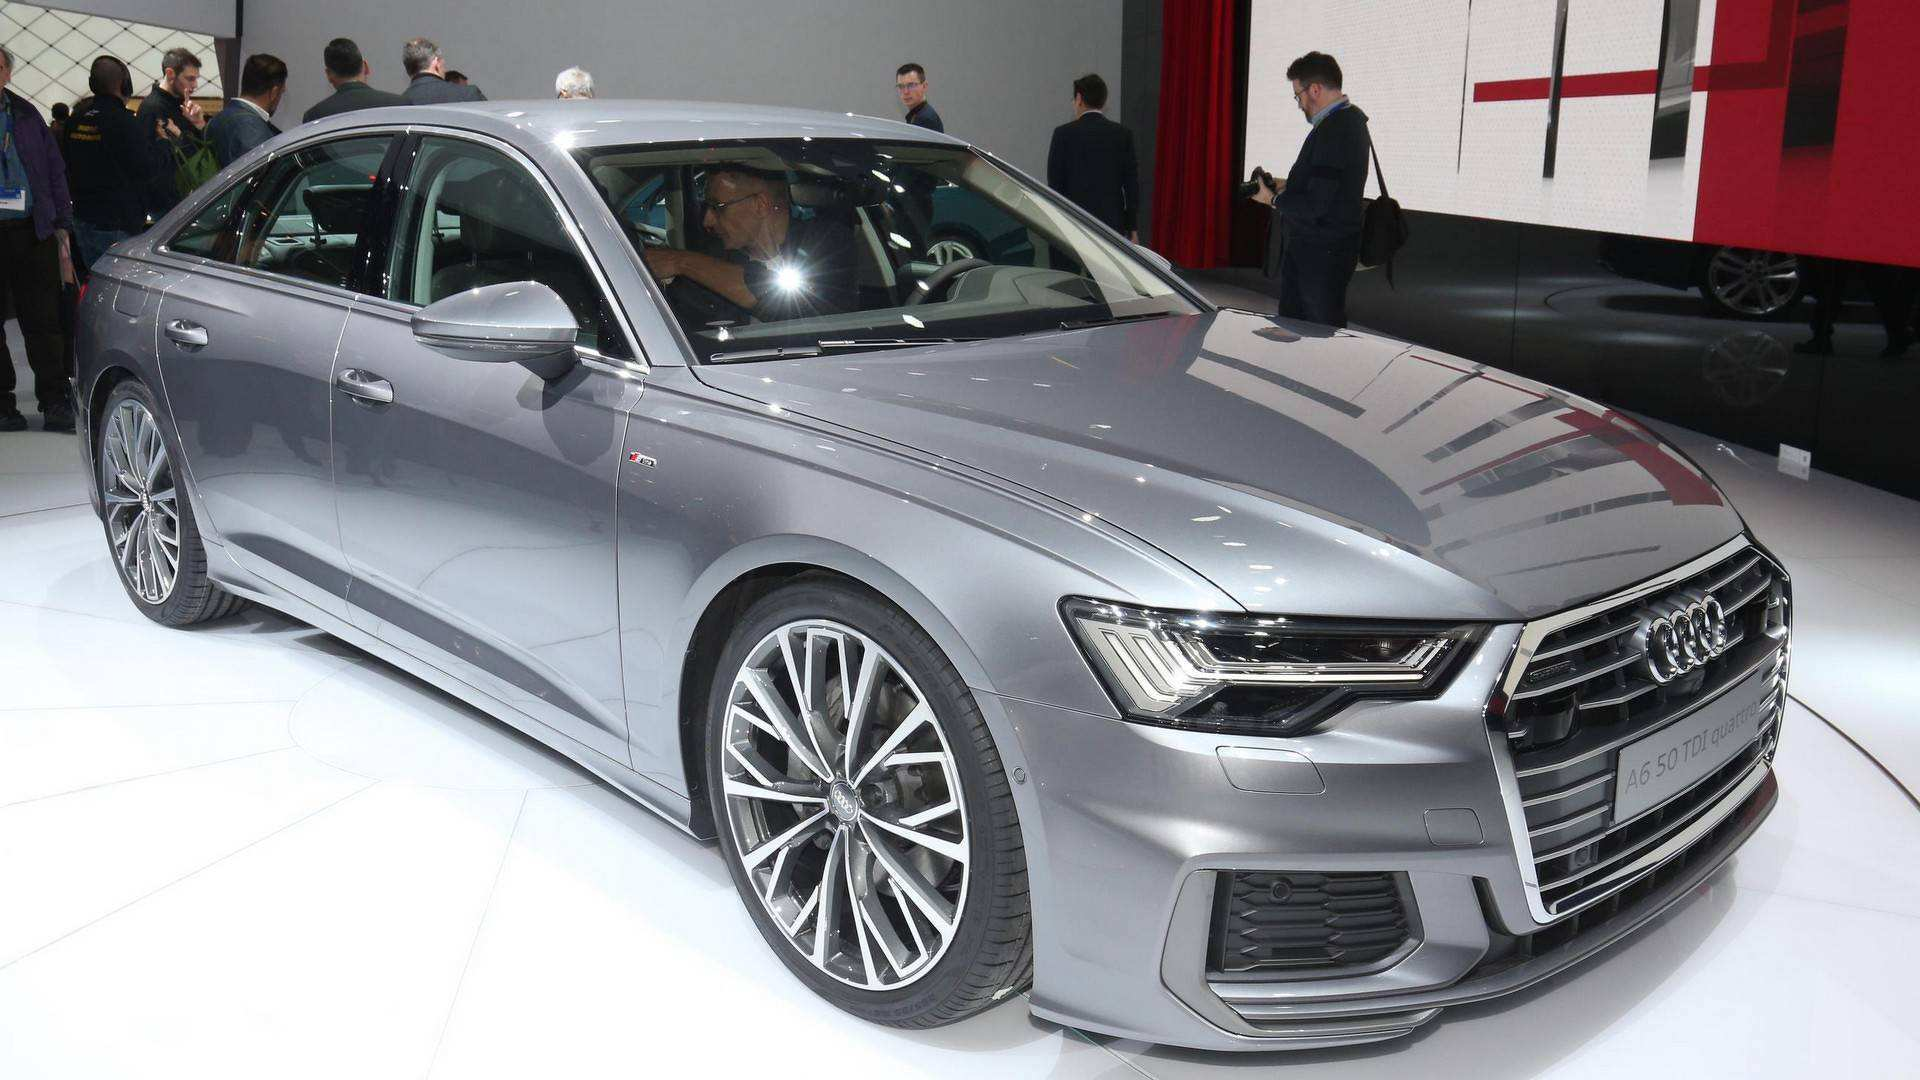 70 All New 2019 Audi Release Date Interior with 2019 Audi Release Date